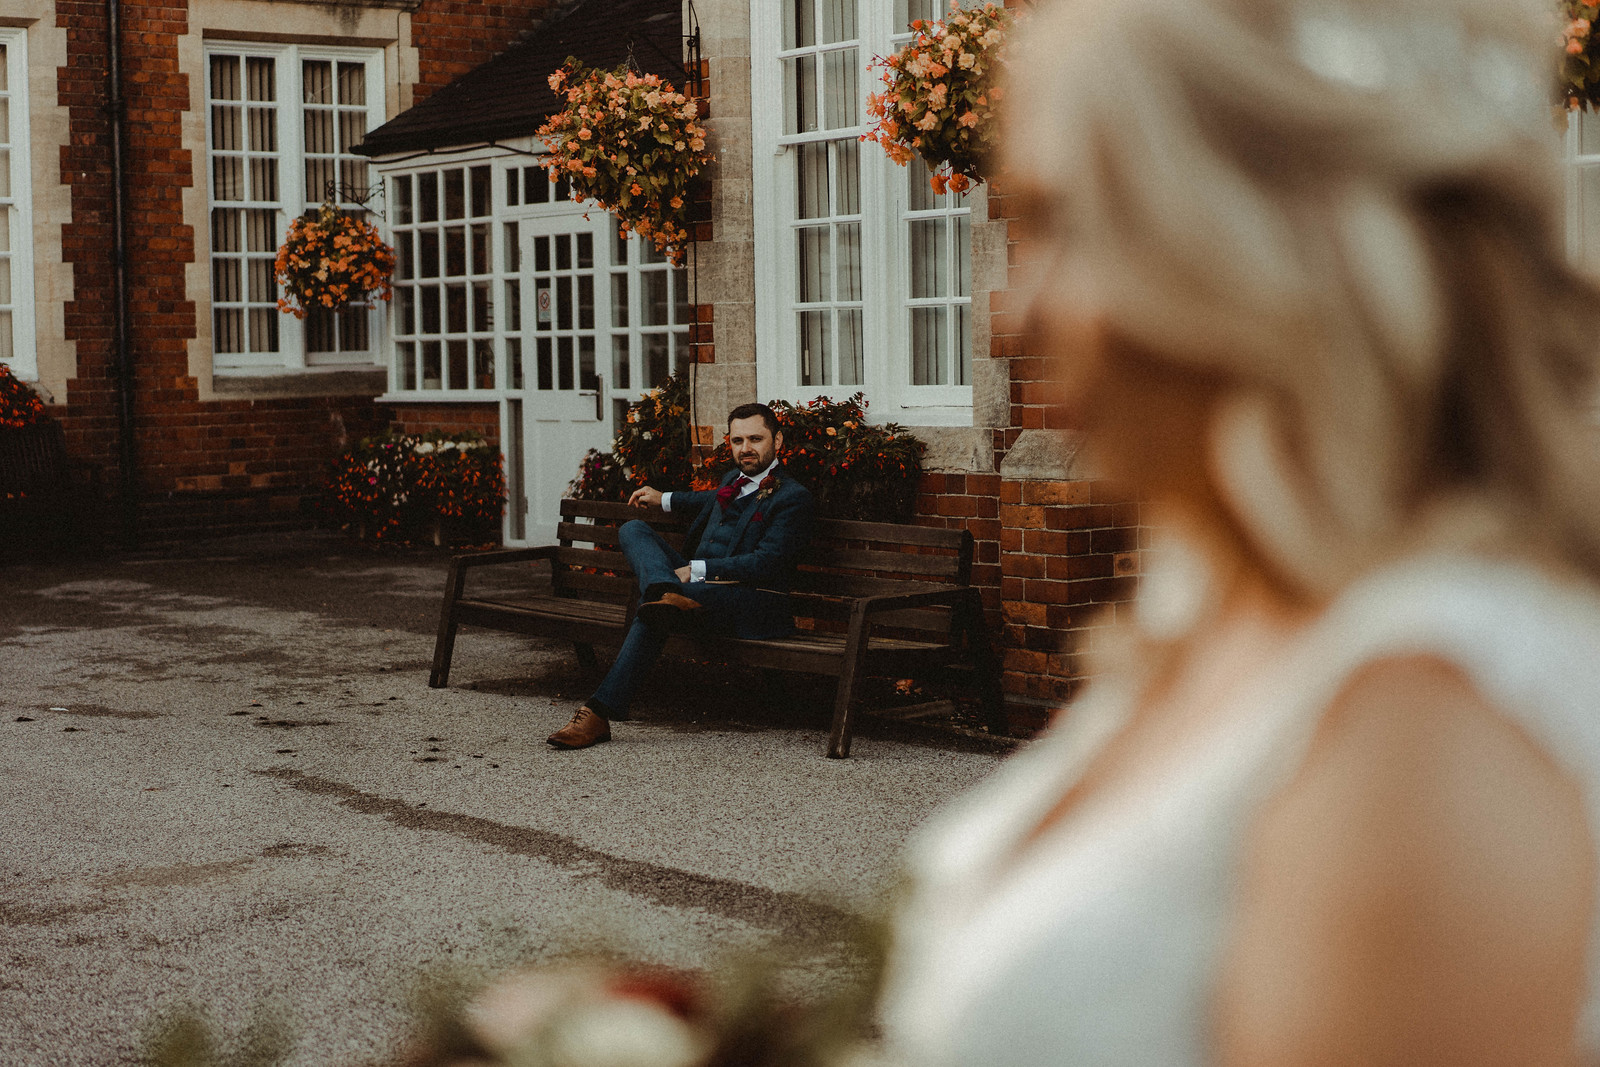 groom looks over the bride, as the bride cuts into the camera shot. Autumn wedding